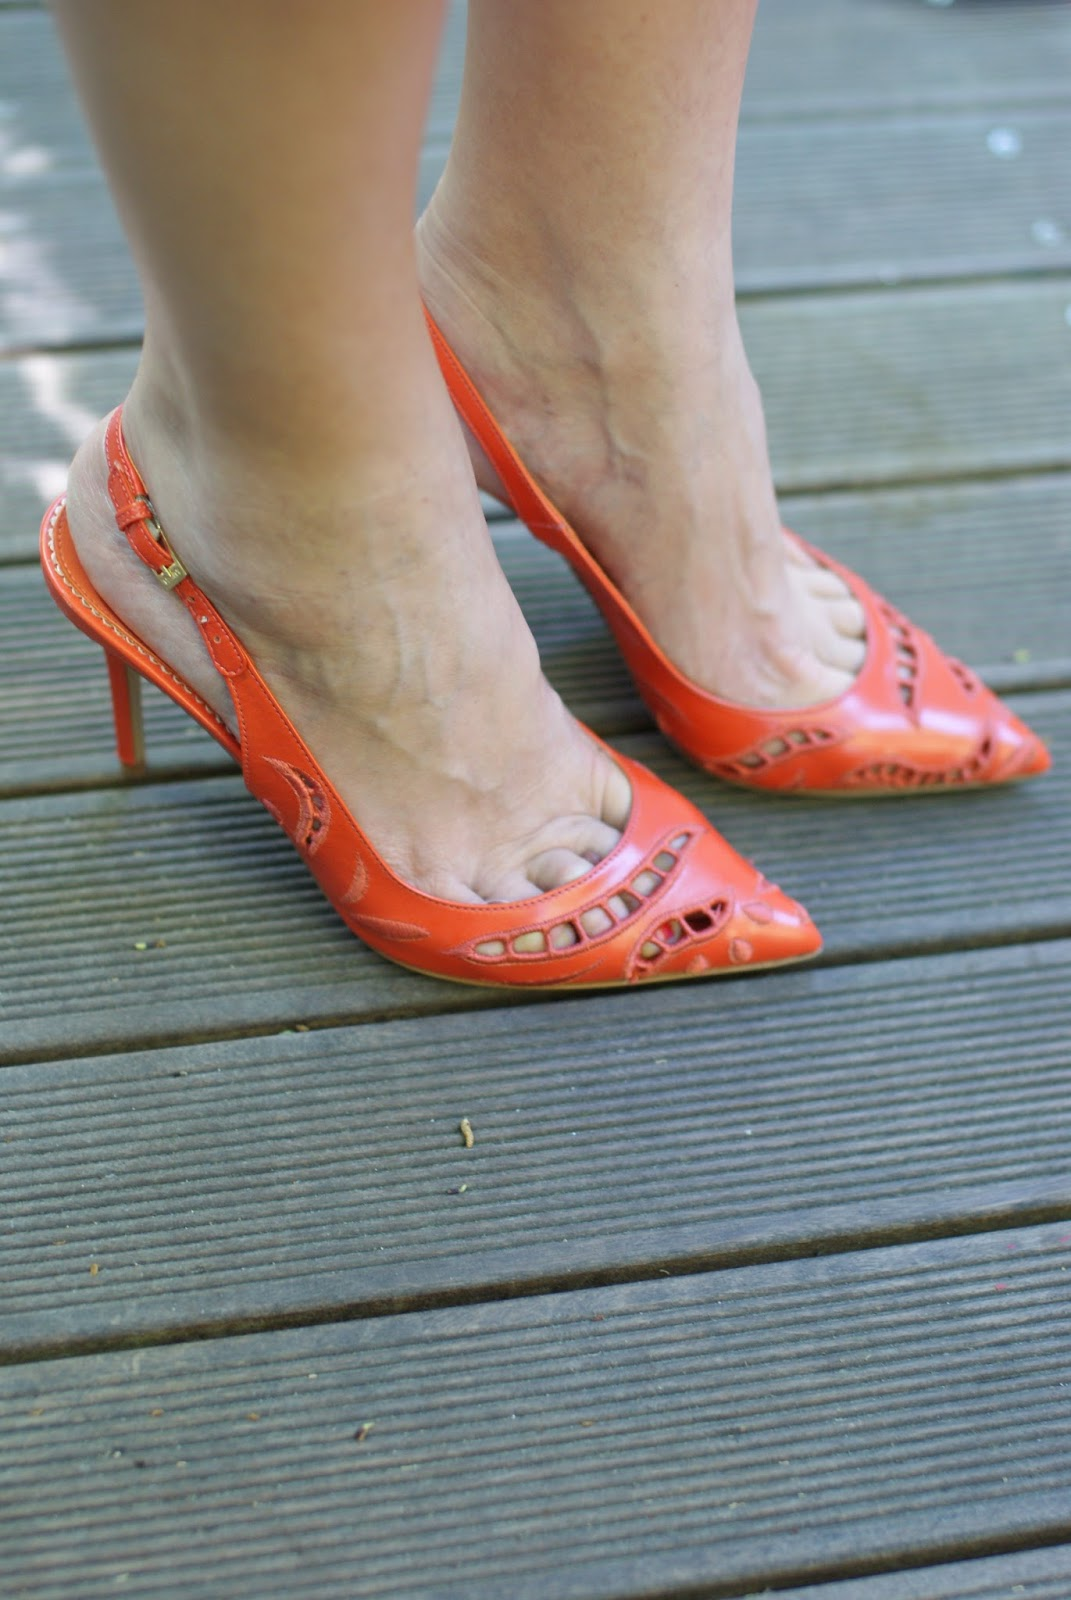 Le Silla orange pumps, Fashion and Cookies, cut out shoes